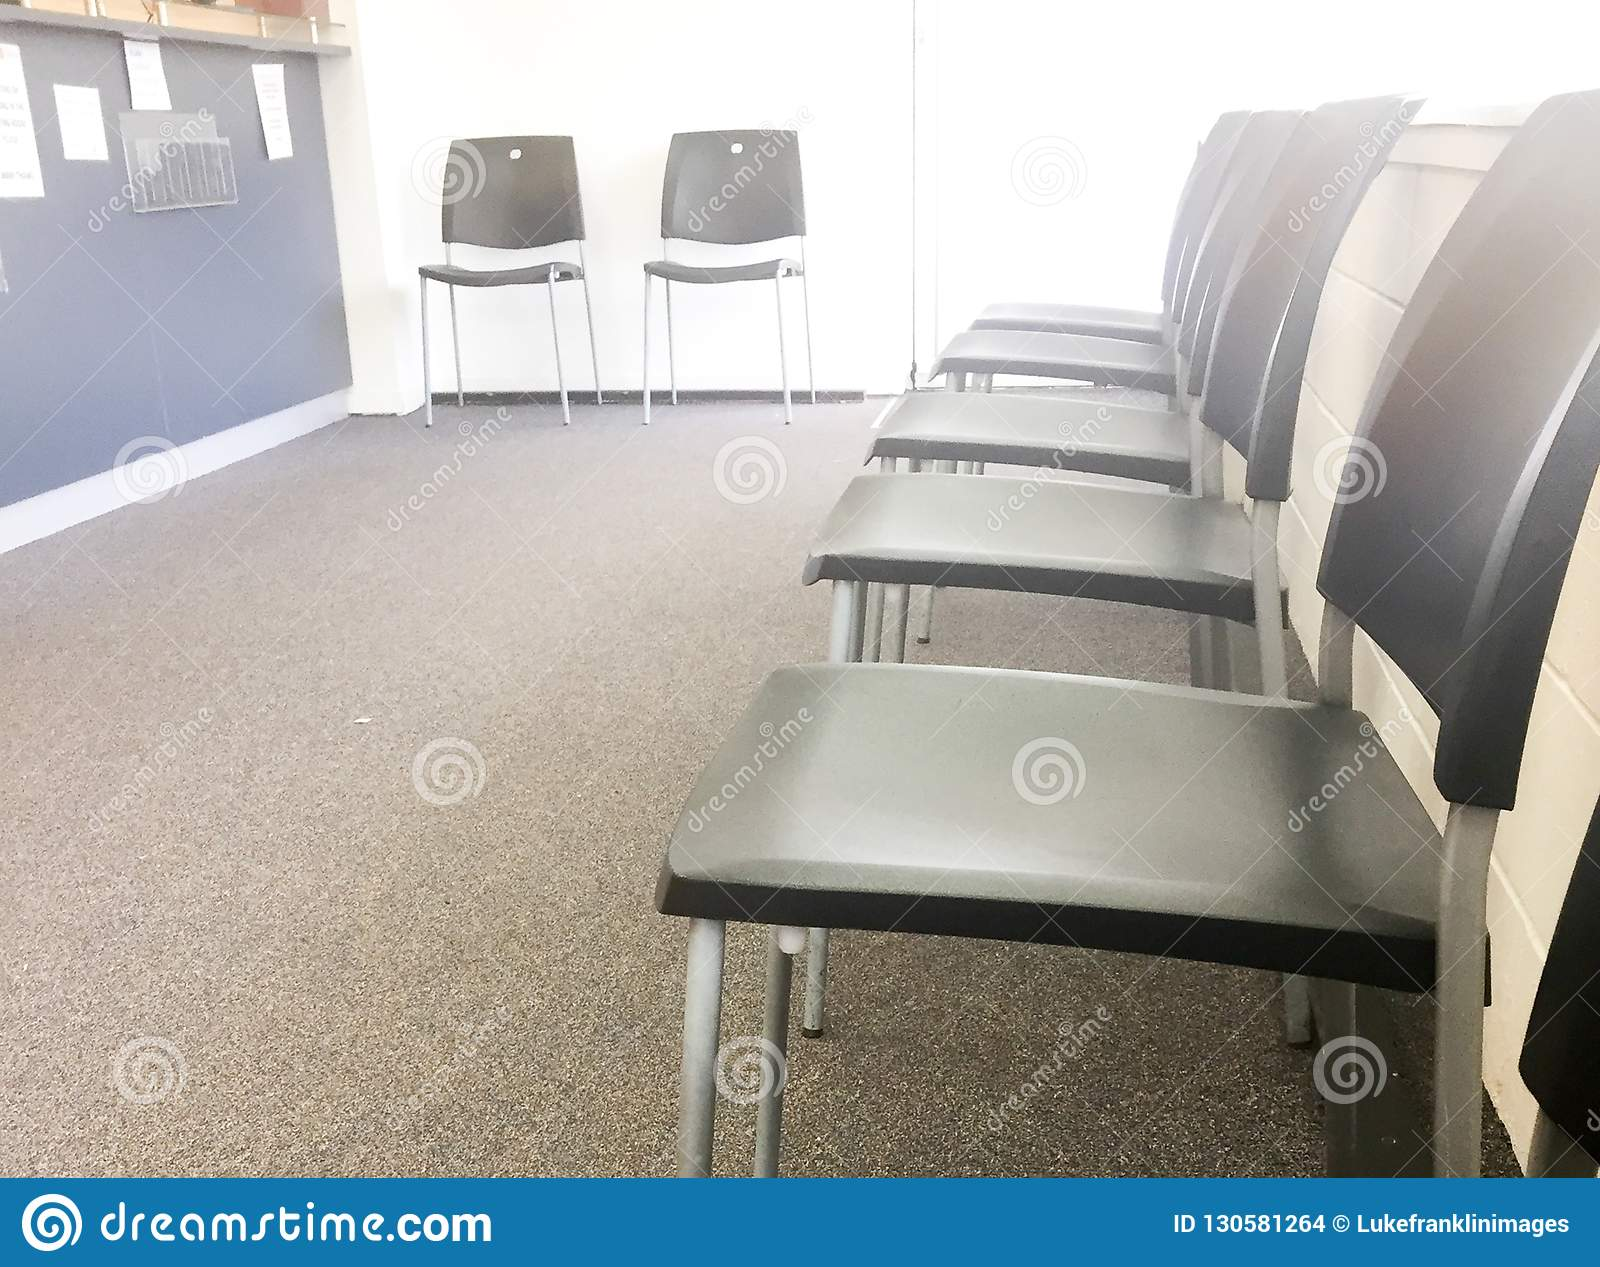 Picture of: Waiting Room Chairs Stock Photo Image Of Decorate Modern 130581264